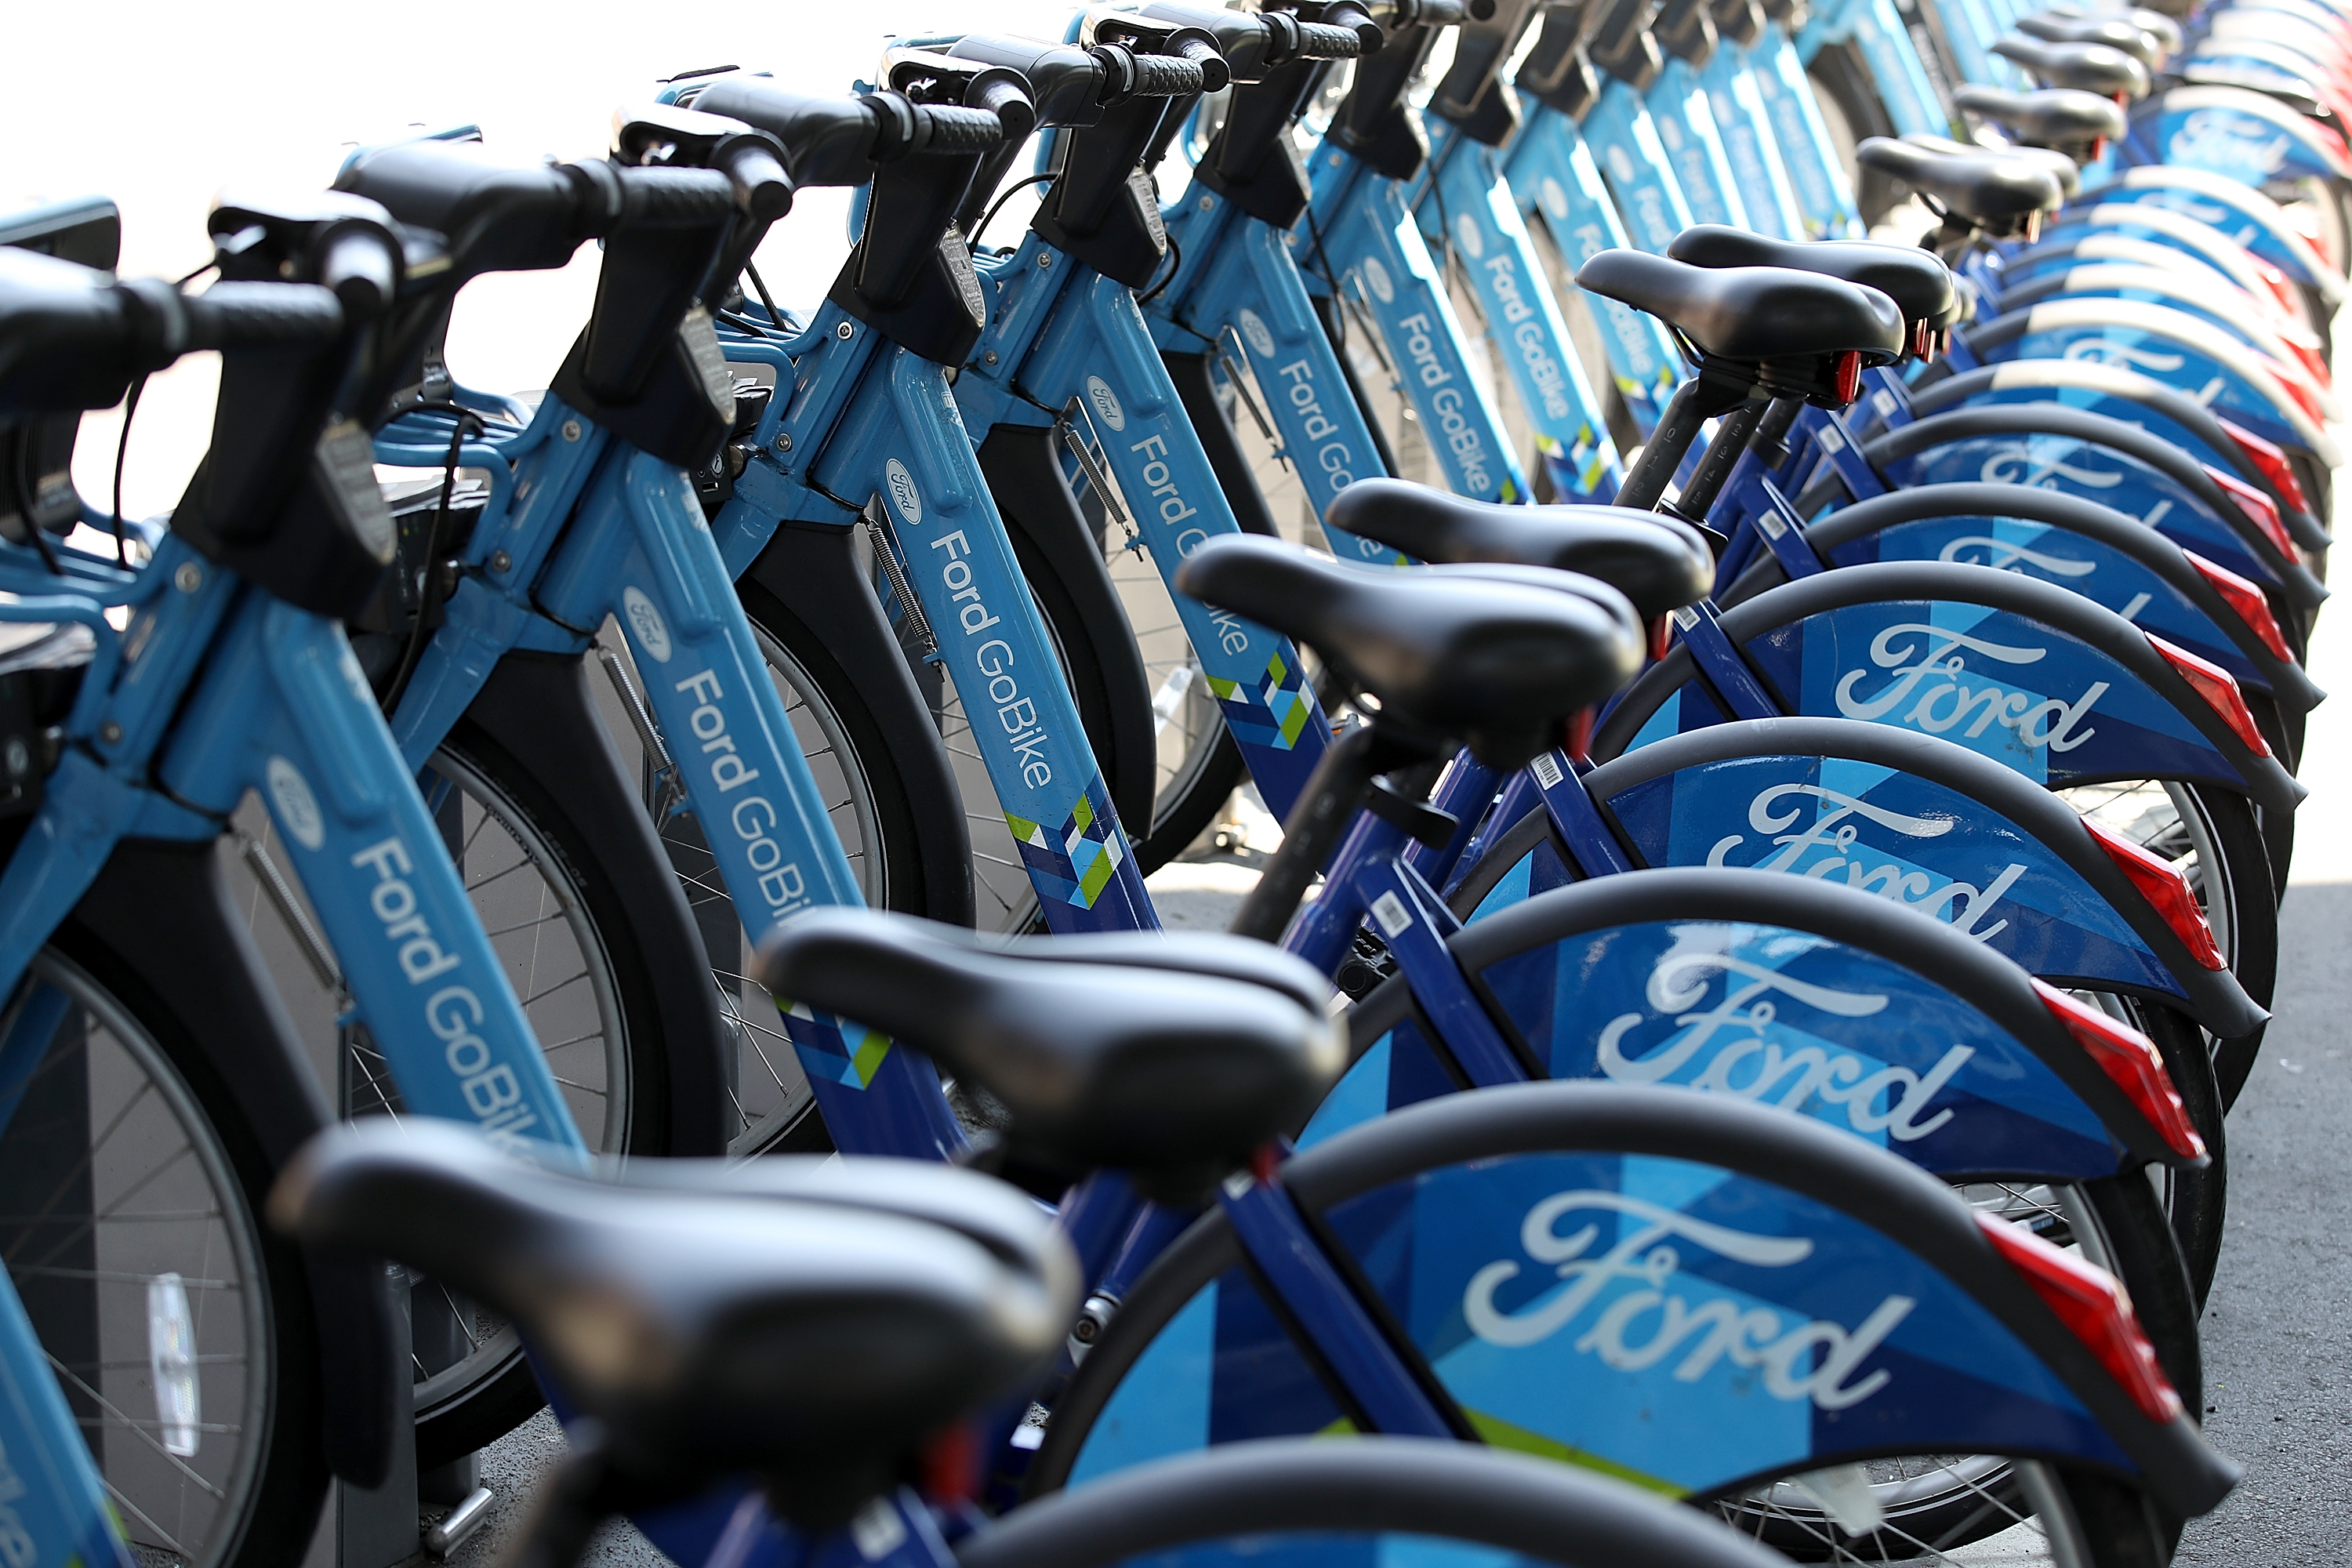 Lyft pulls electric bikes from major cities over bad brakes